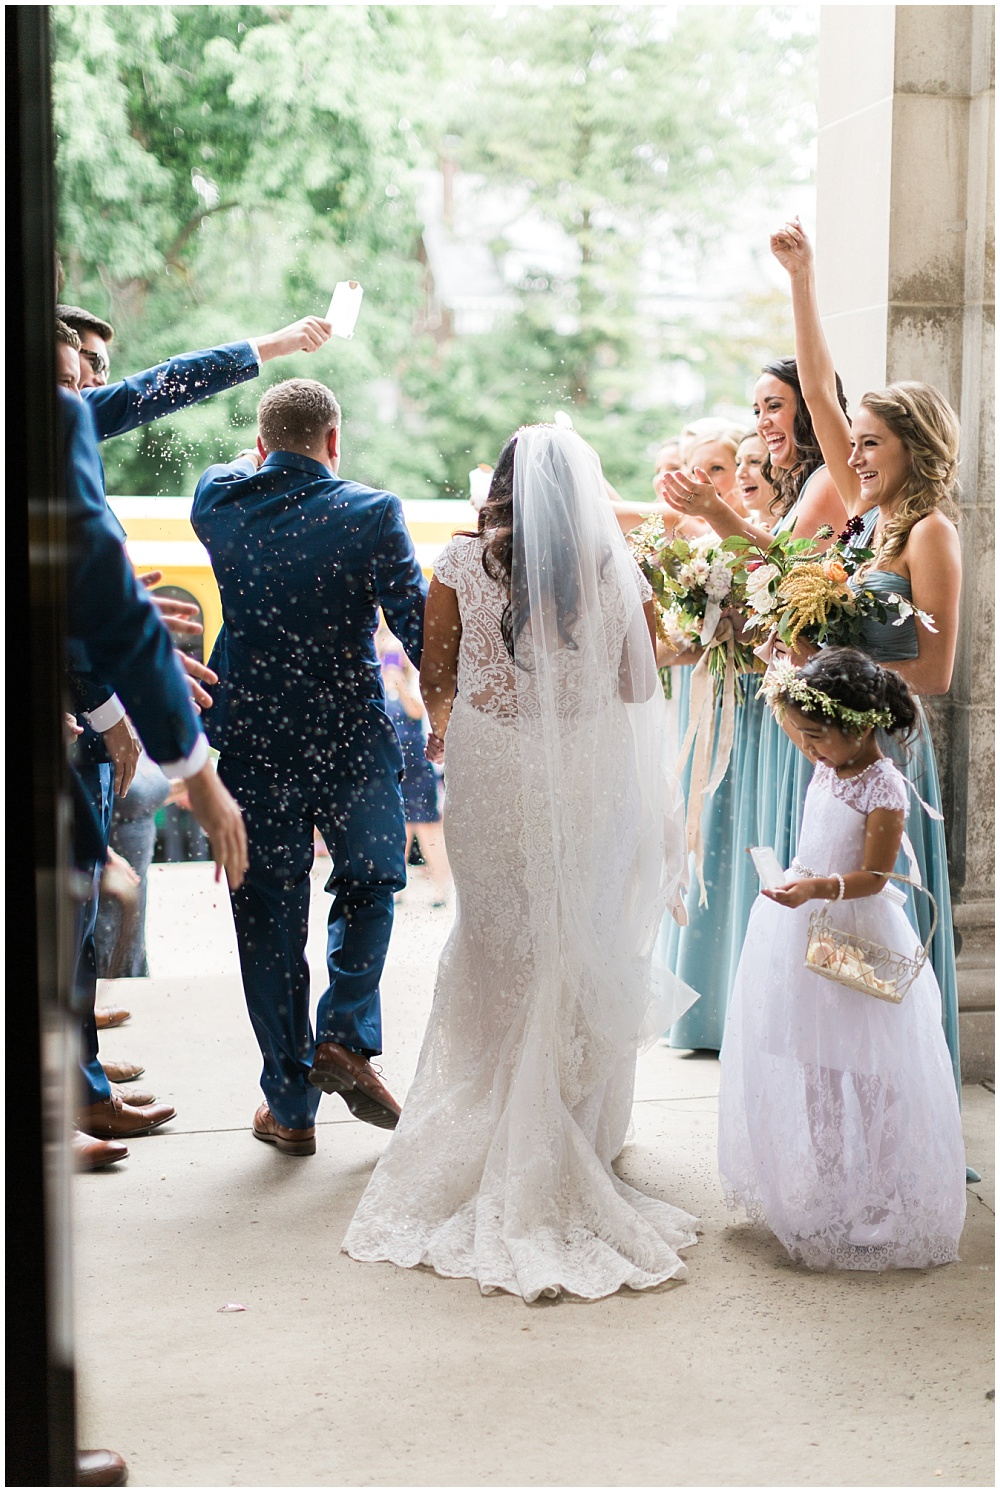 bride and groom ceremony exit; birdseed formal exit; tossing birdseed; white lace wedding dress; Mexican inspired gold & floral wedding; Crowne Plaza Indianapolis Downtown Union Station; neutral floral and greenery wedding|Cory + Jackie and Jessica Dum Wedding Coordination